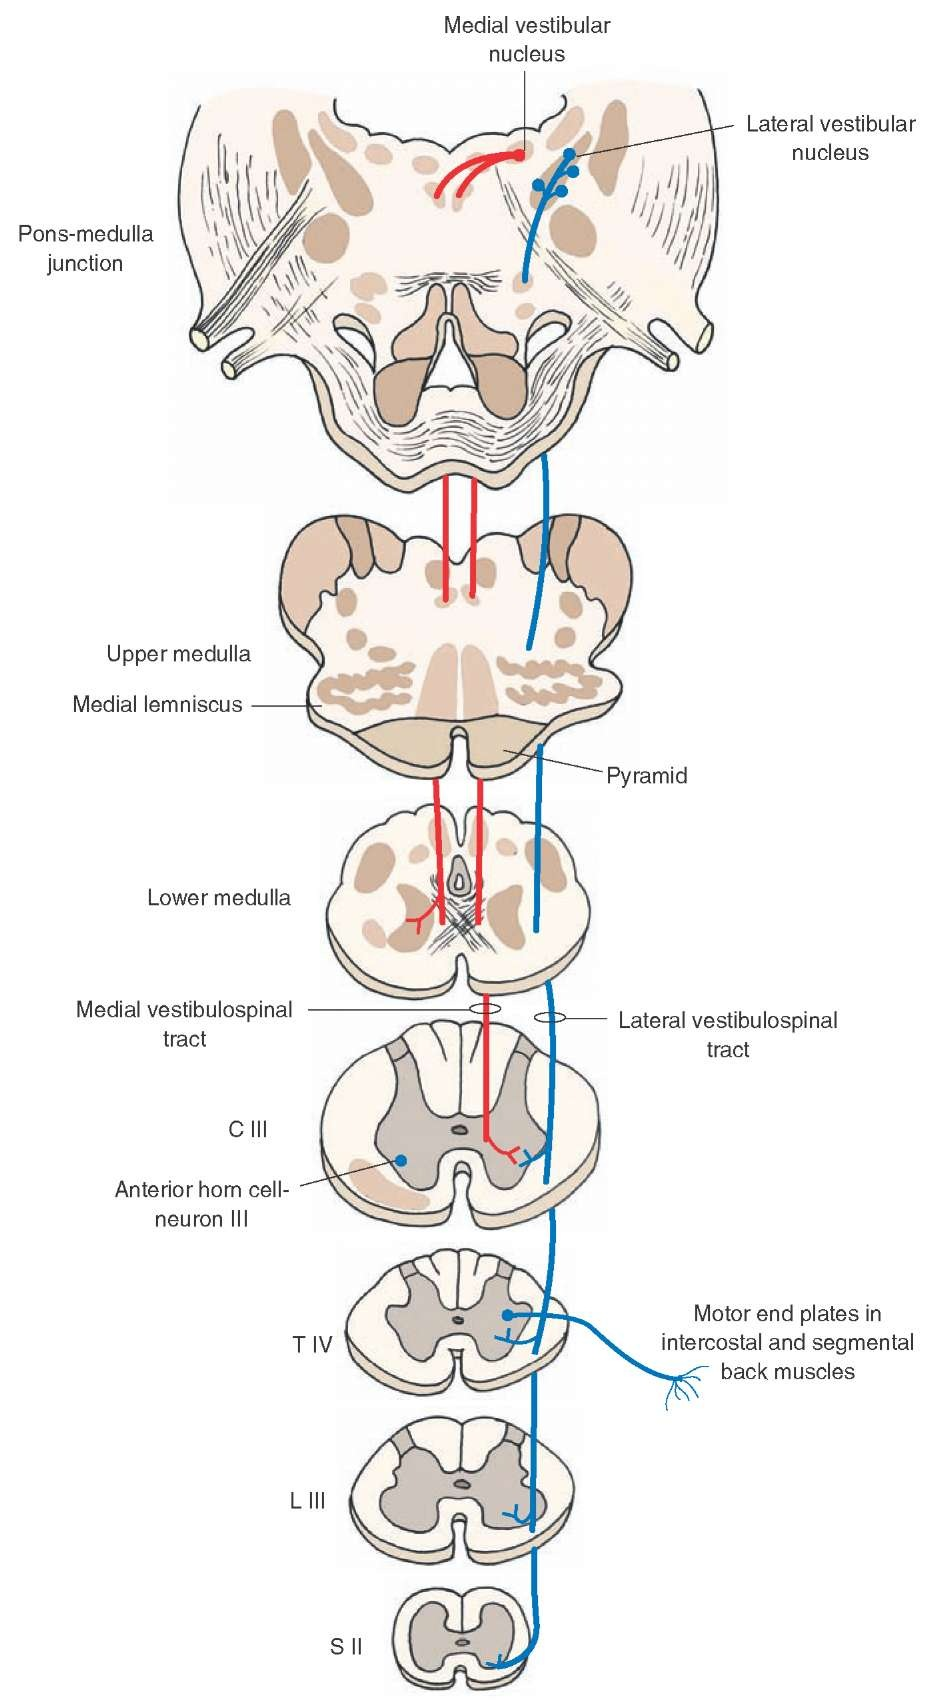 Postural Control besides 49551 moreover Peripheral Nervous System also 4044676 moreover Burkett Miles Clam Dissection. on organs dorsal and ventral